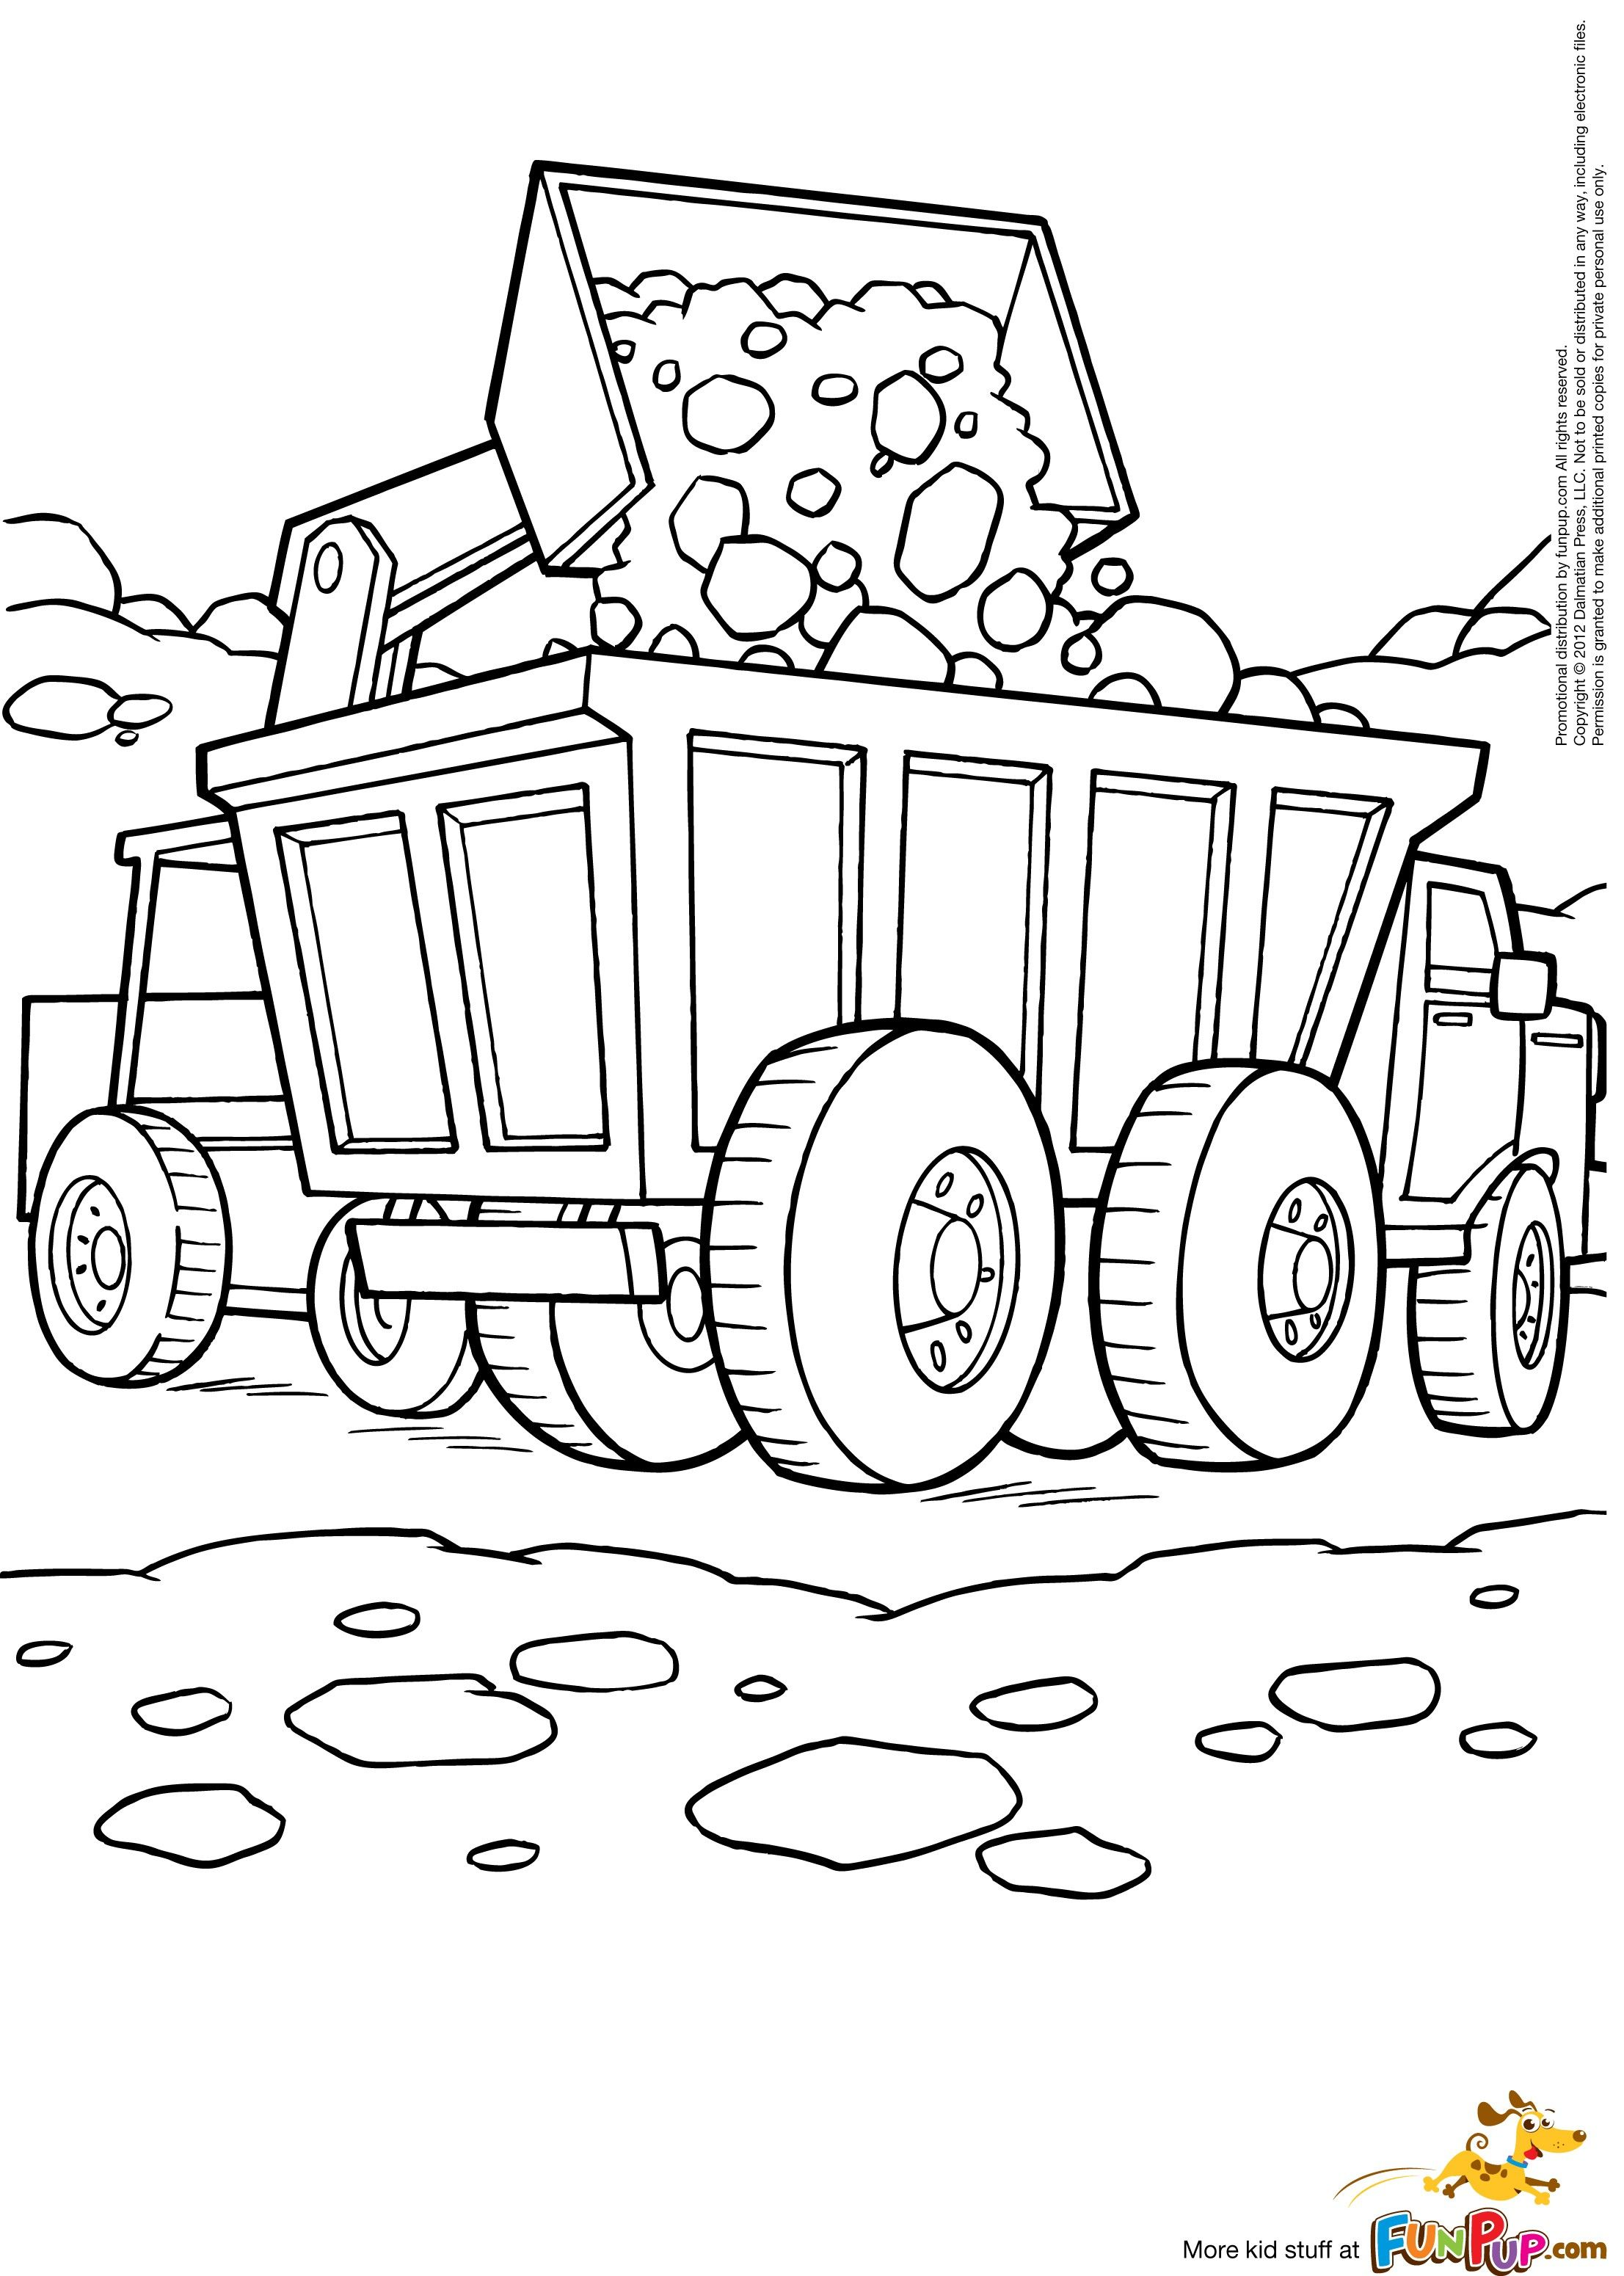 Excavator Coloring Pages Coloring Pages Truck Coloring Pages Bear Coloring Pages